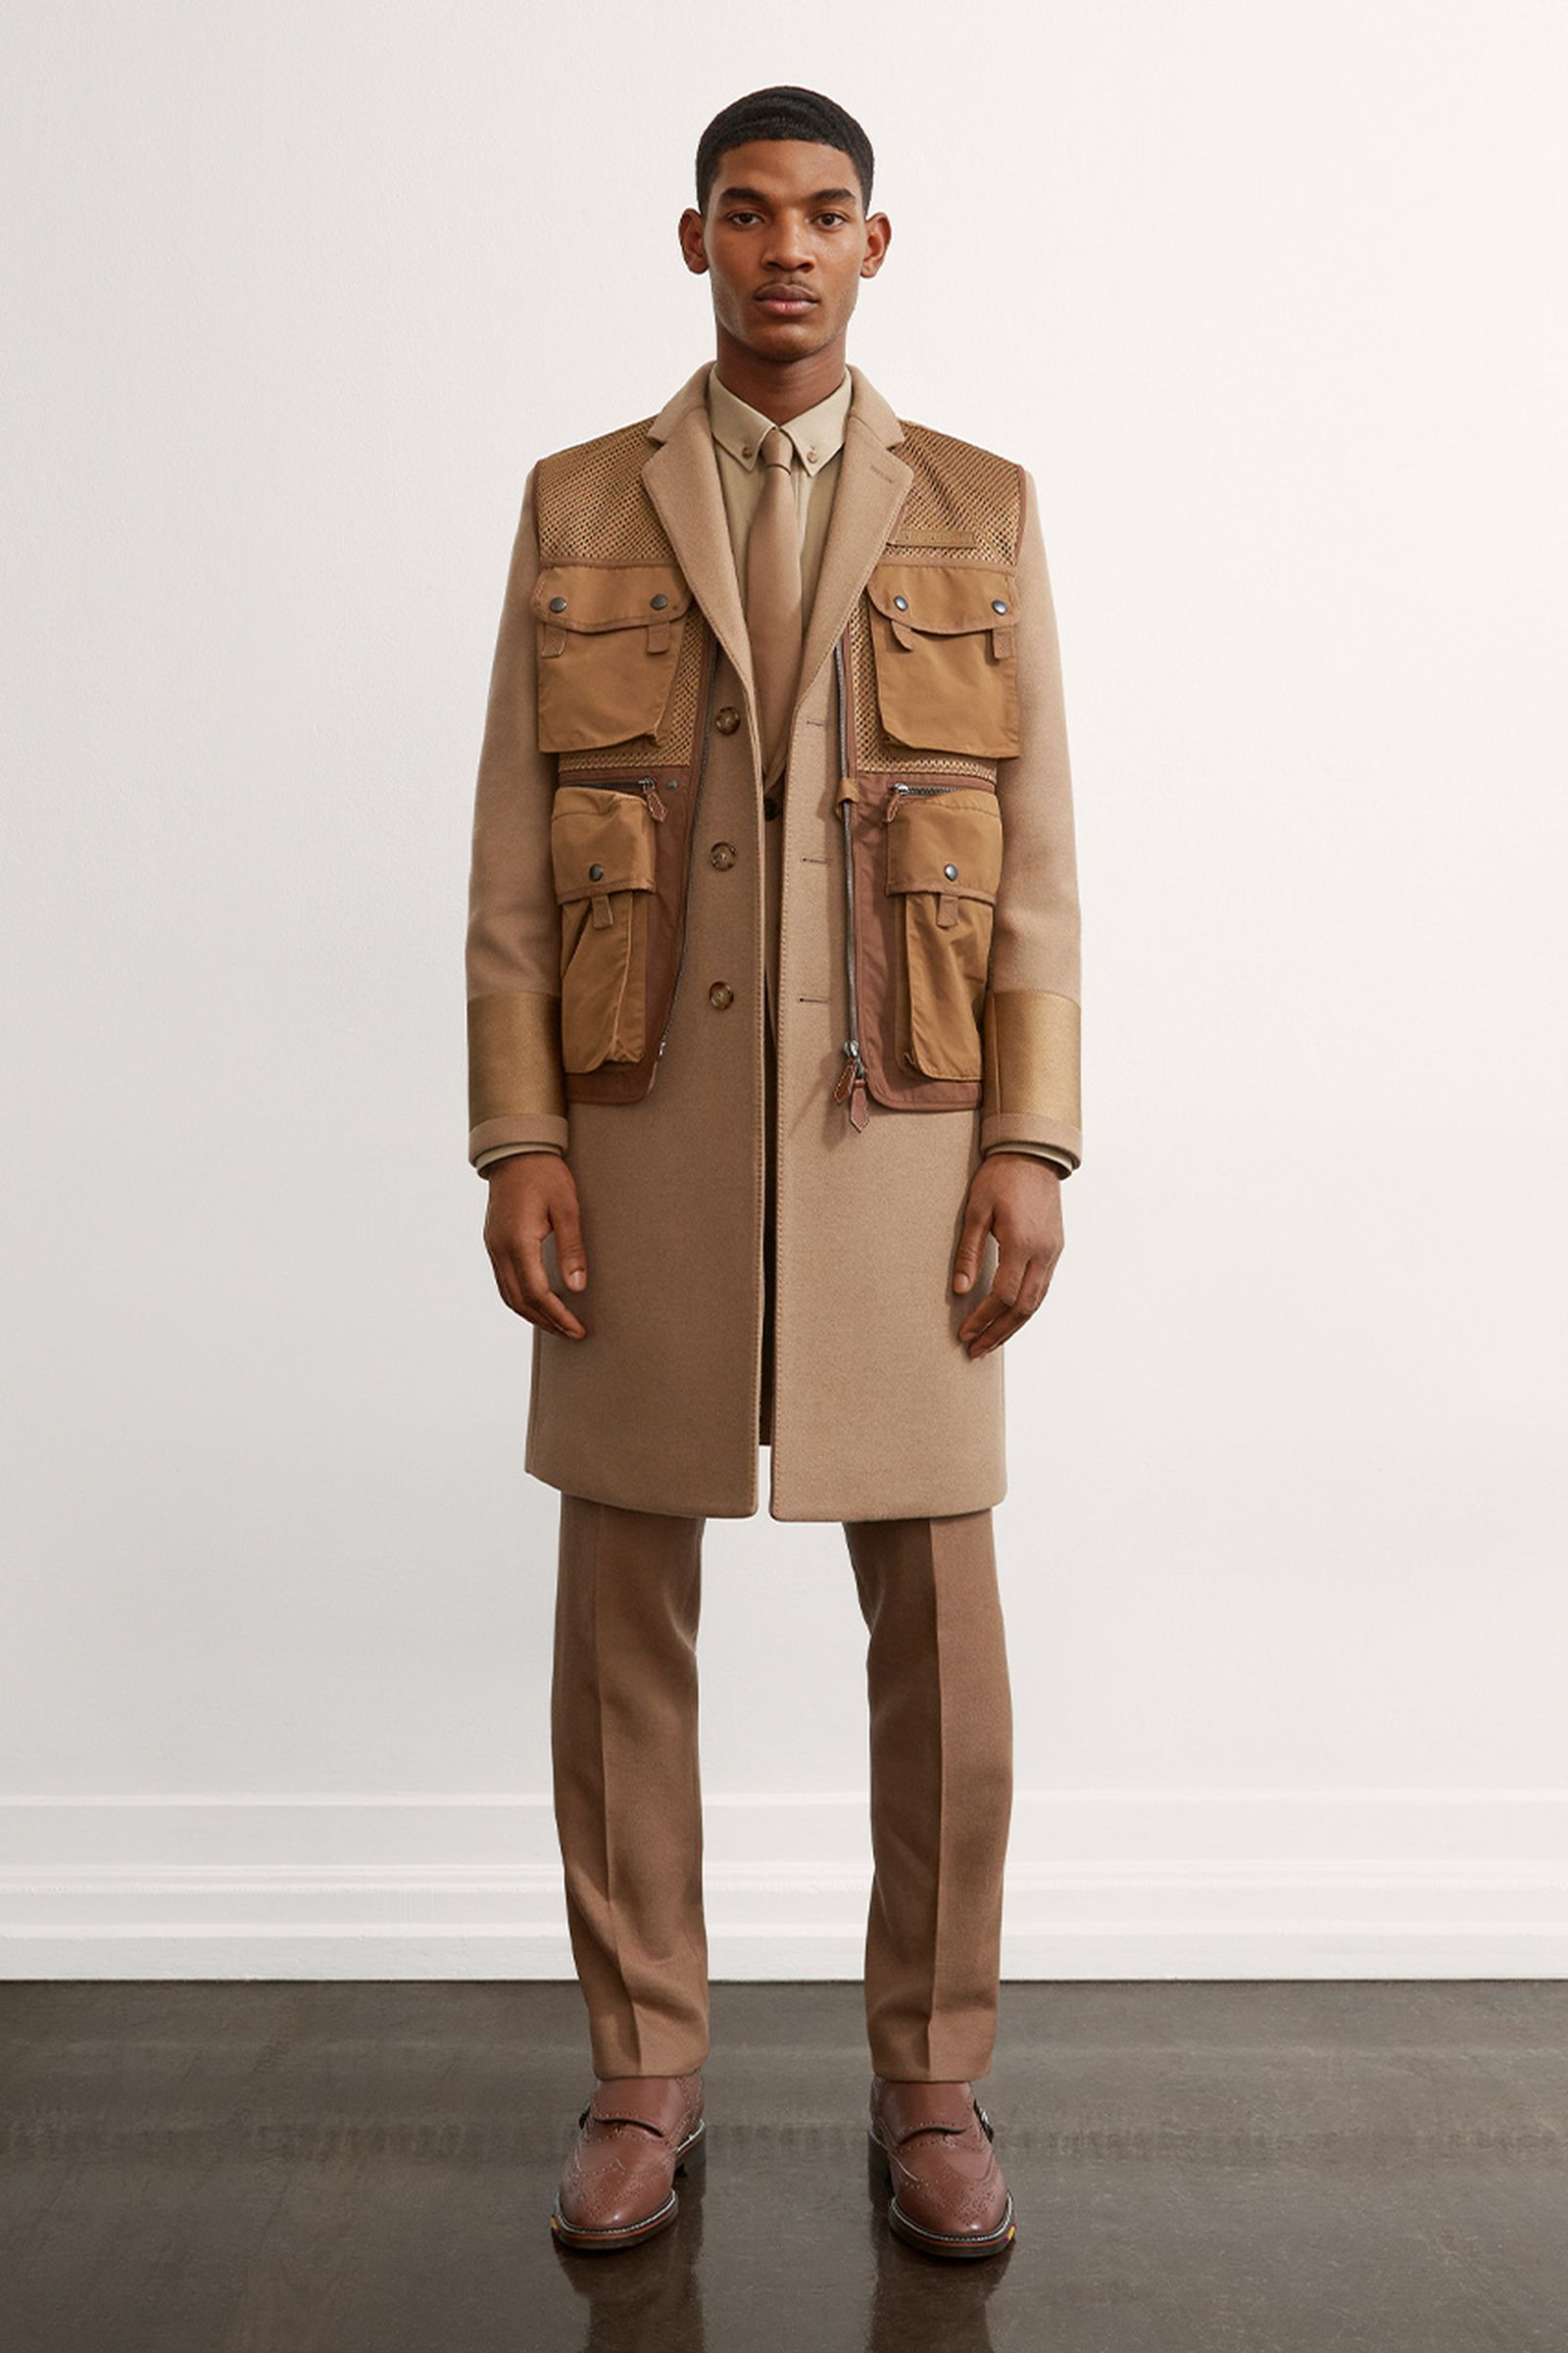 burberry-fall-winter-2021-pre-collection-lookbook-8